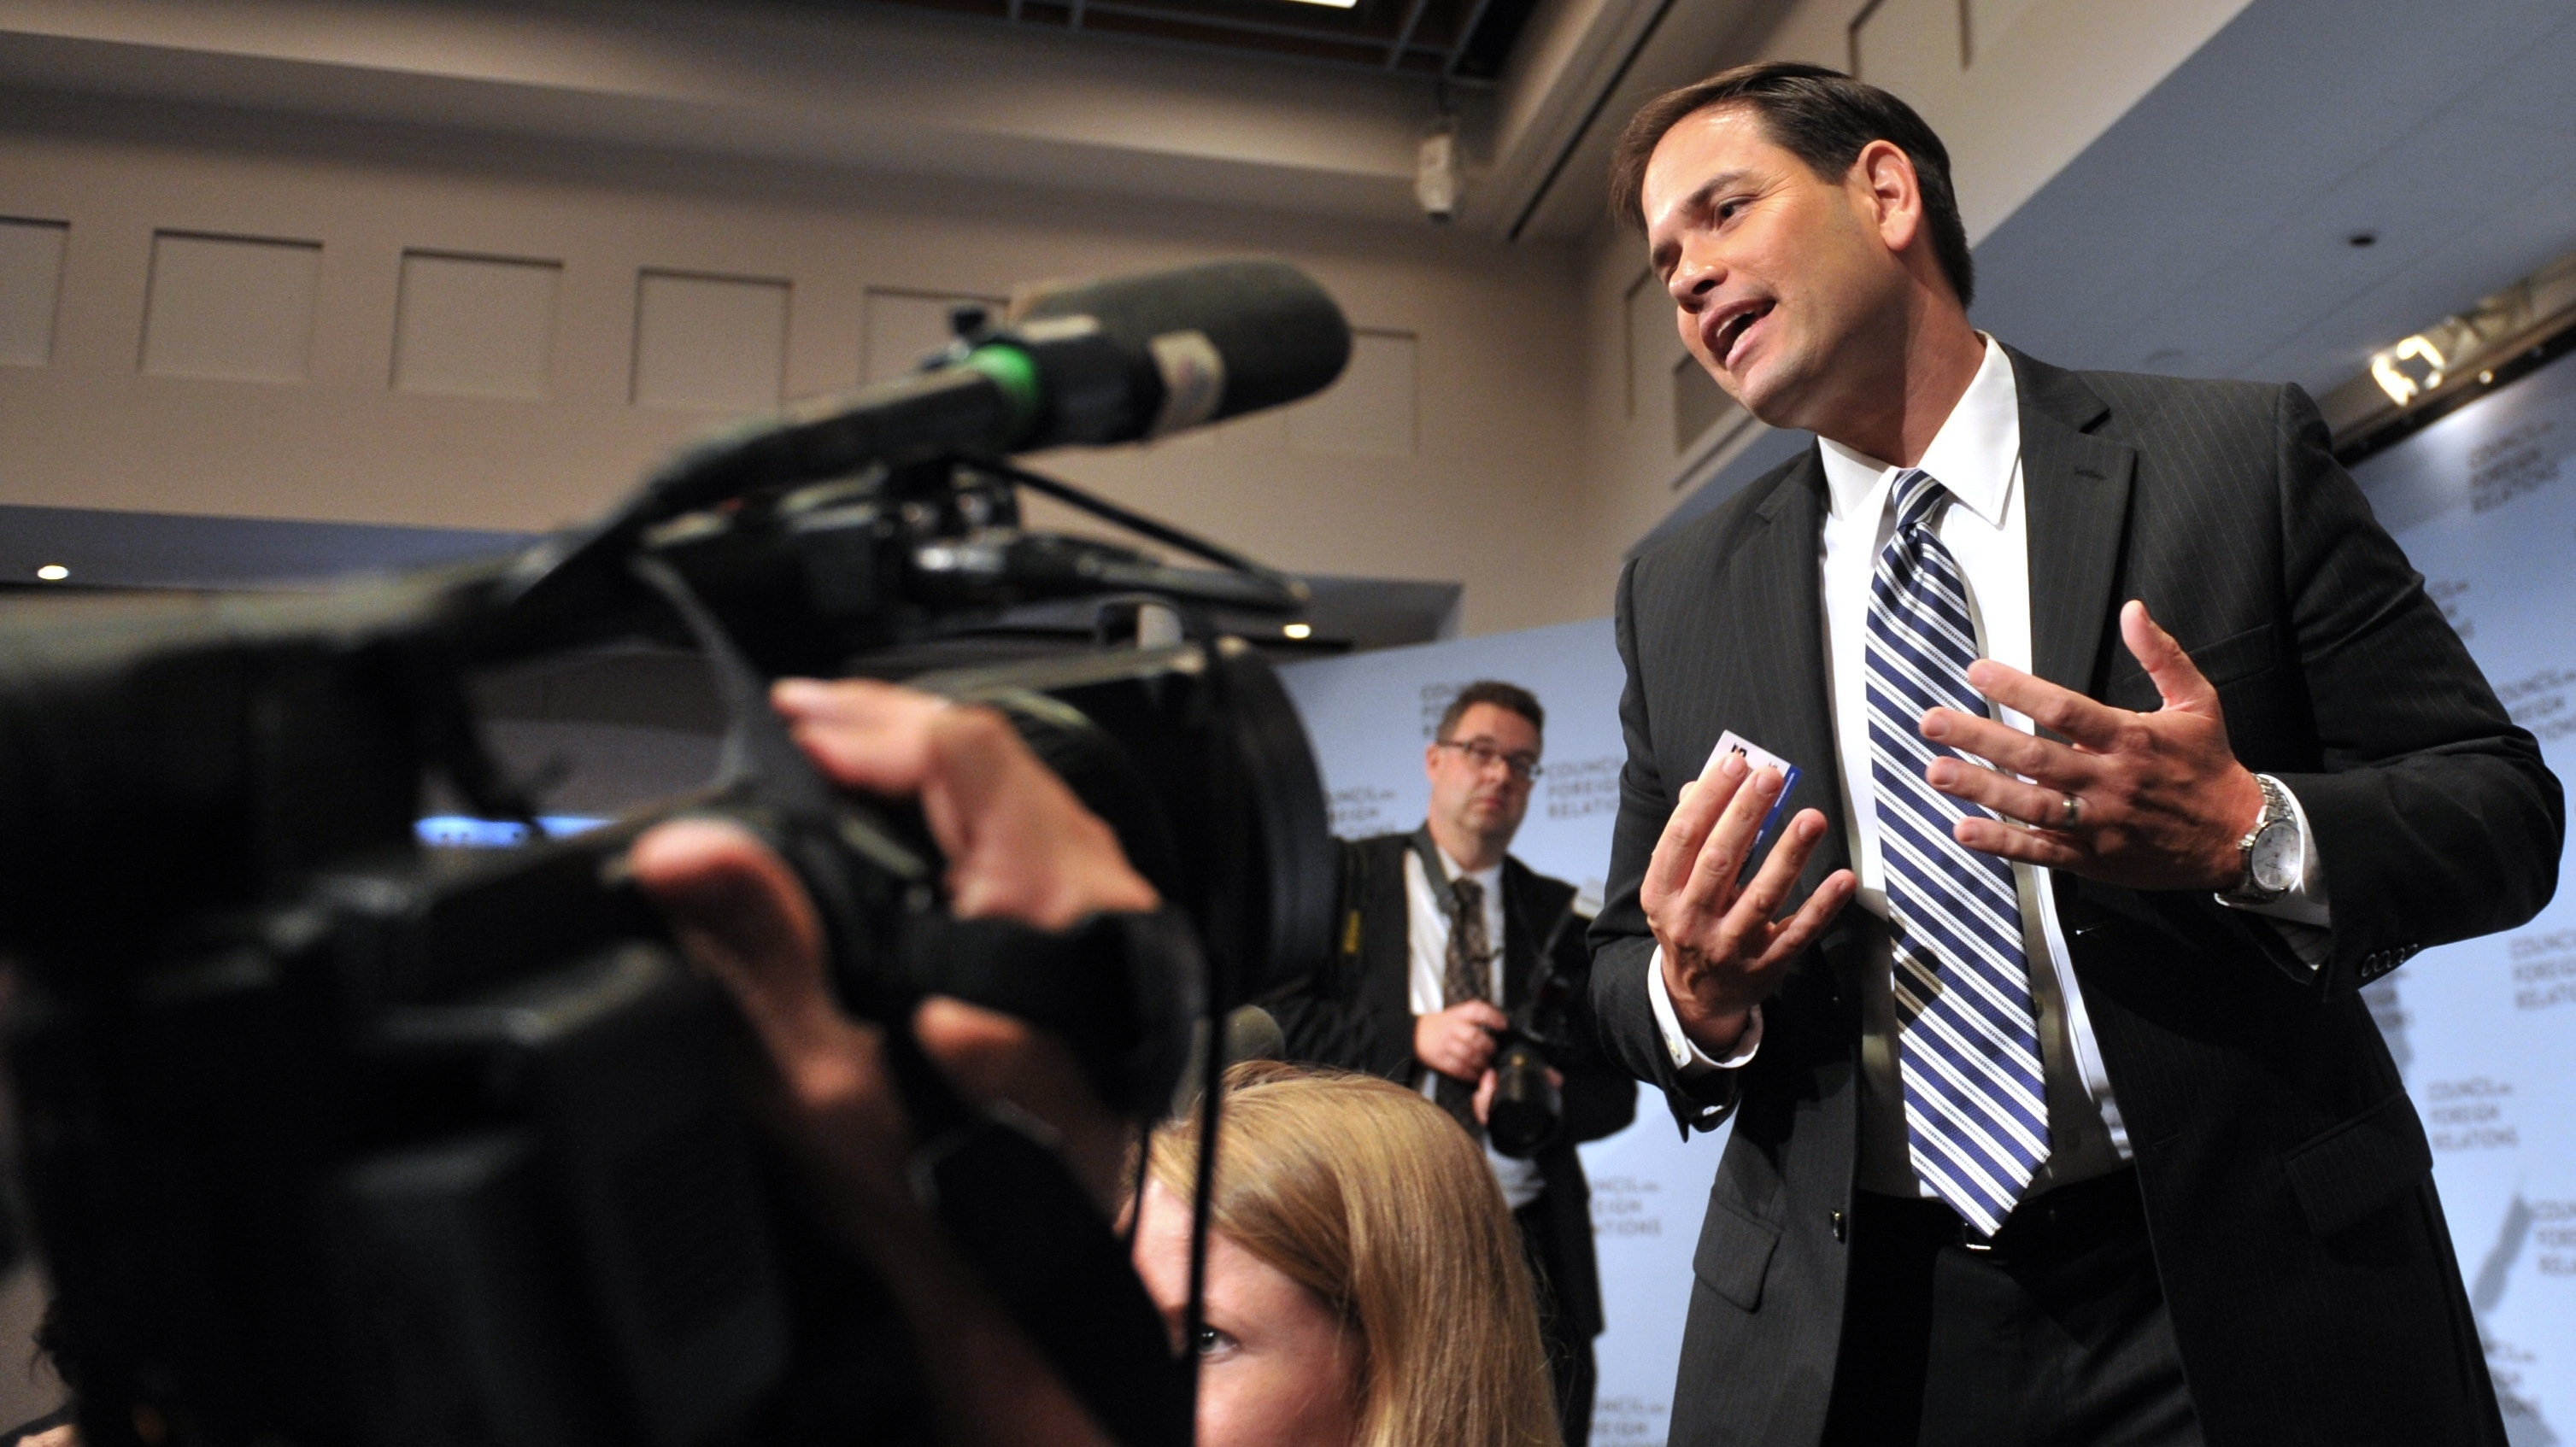 Sen. Marco Rubio, R-Fla., leaves the stage after speaking at the Council on Foreign Relations on May 31 in New York.